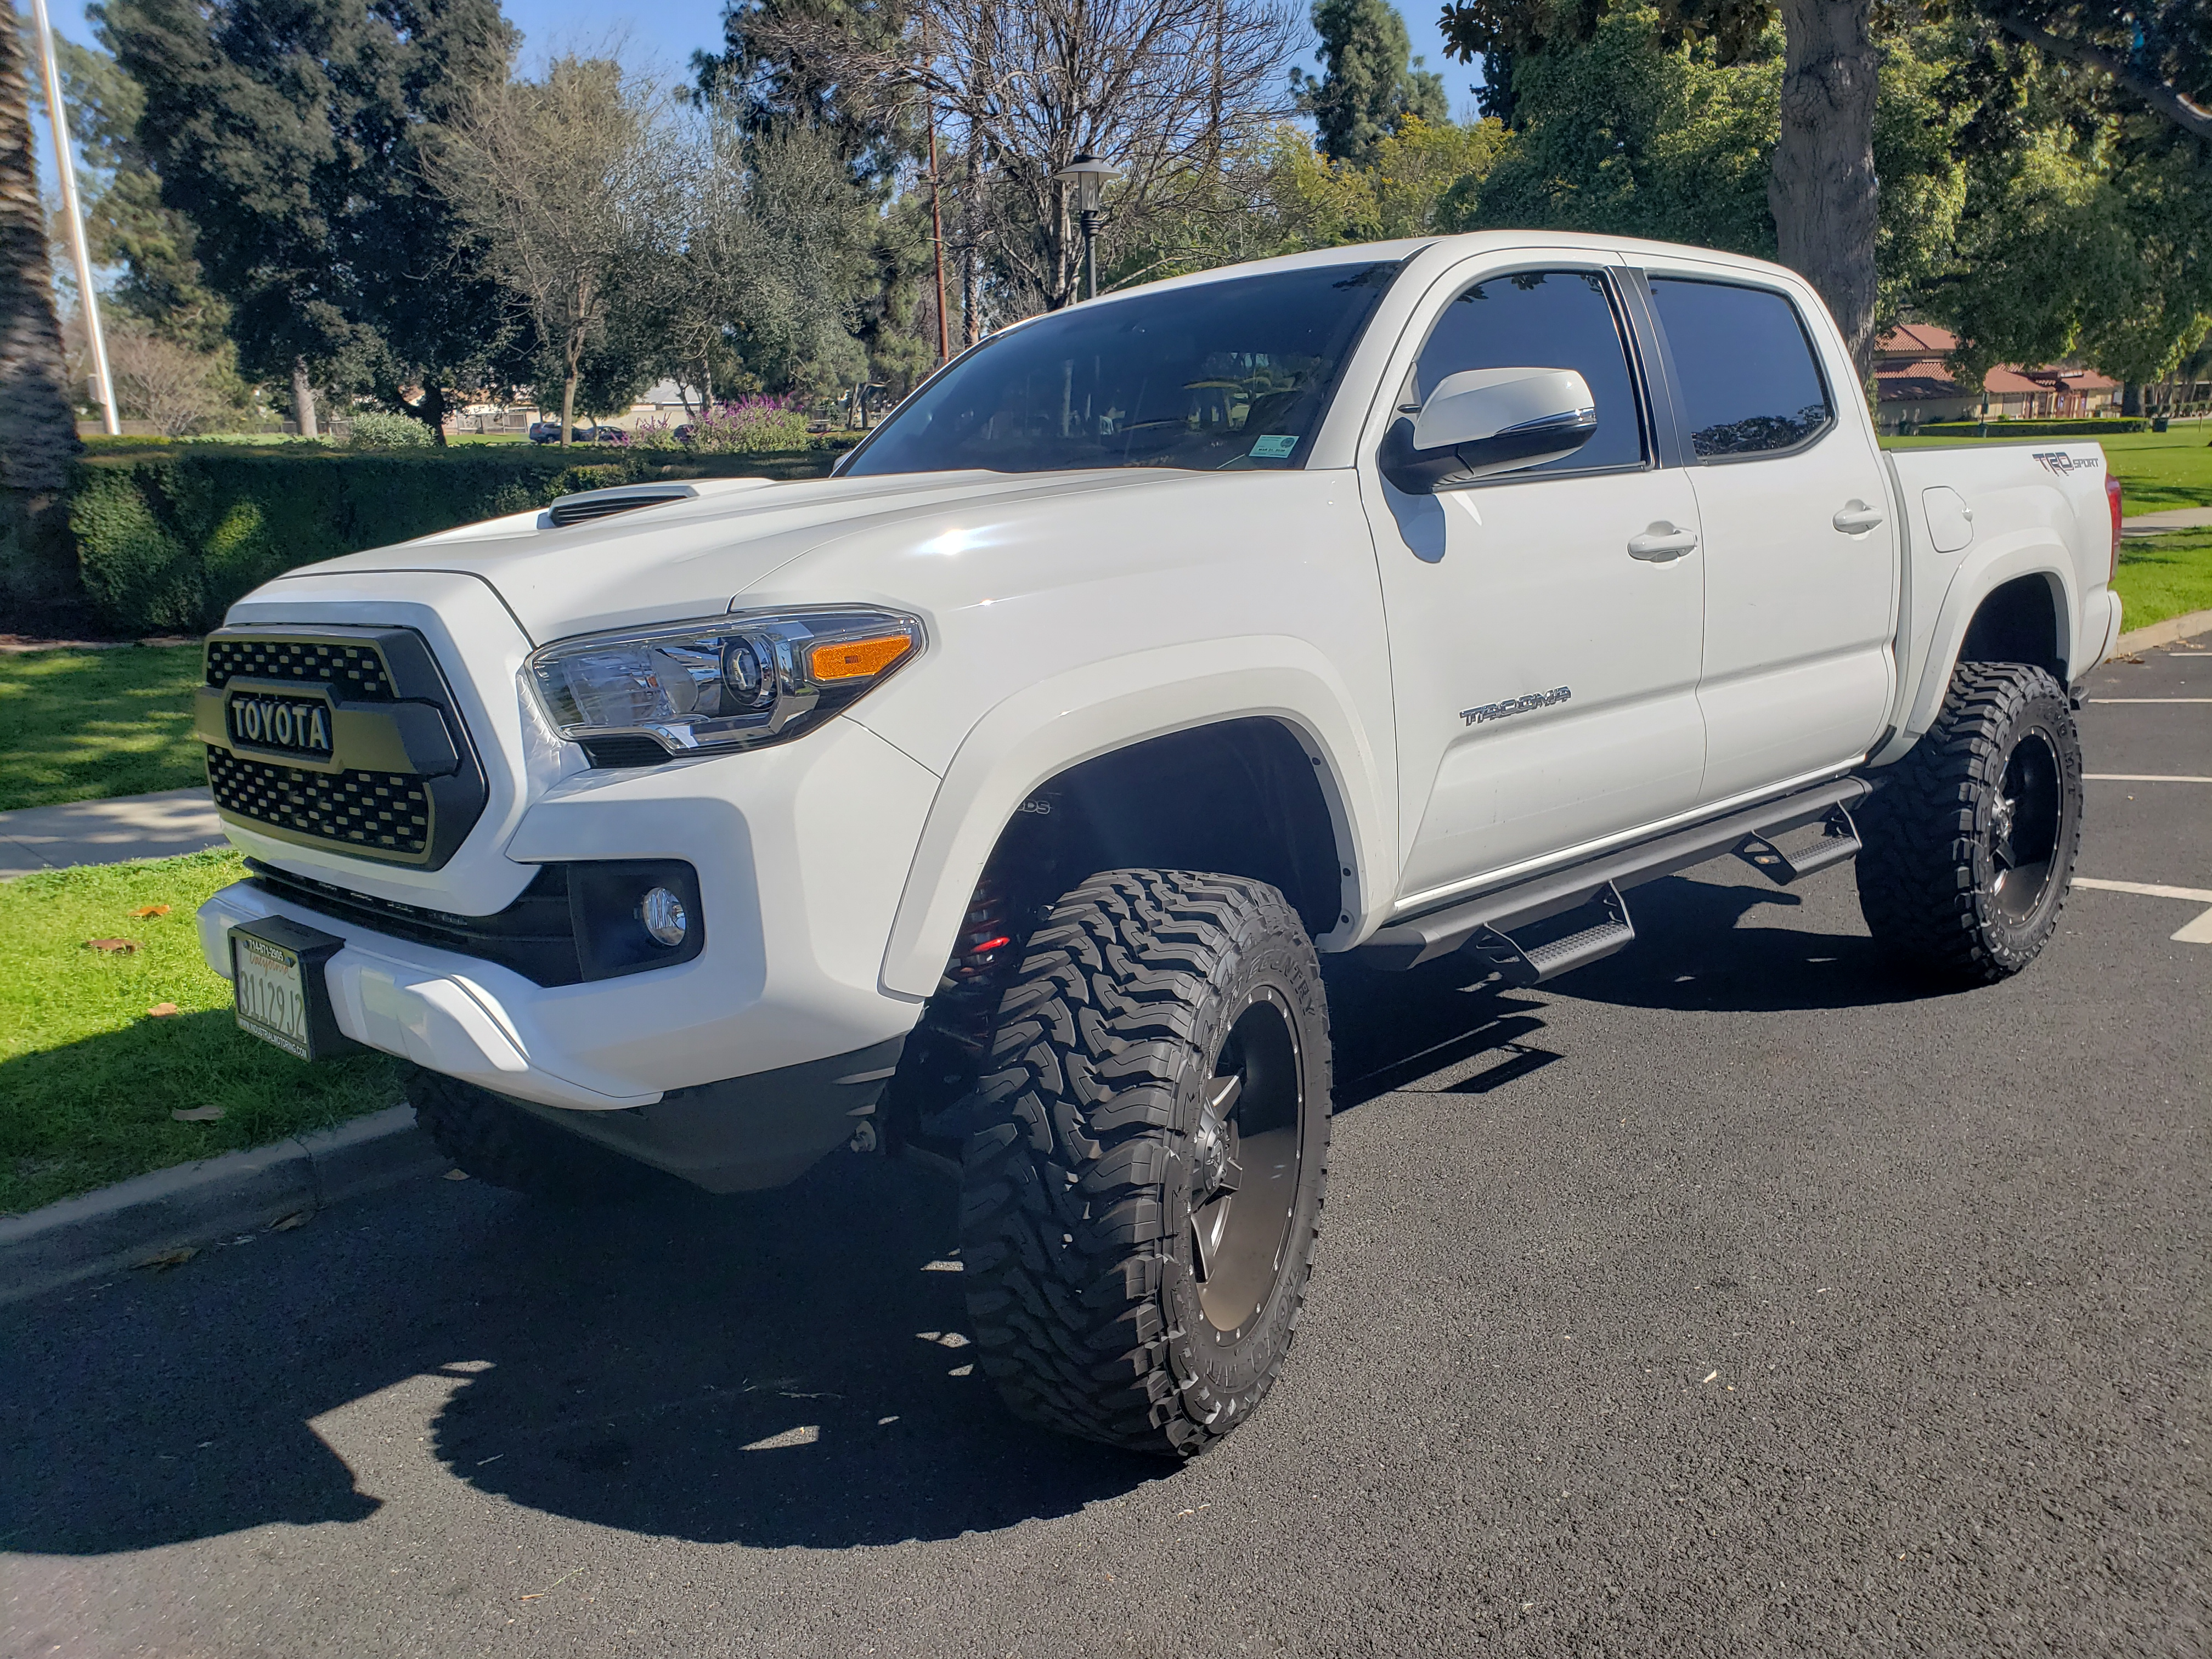 Used 2017 Toyota Tacoma For Sale in South Pasadena, CA